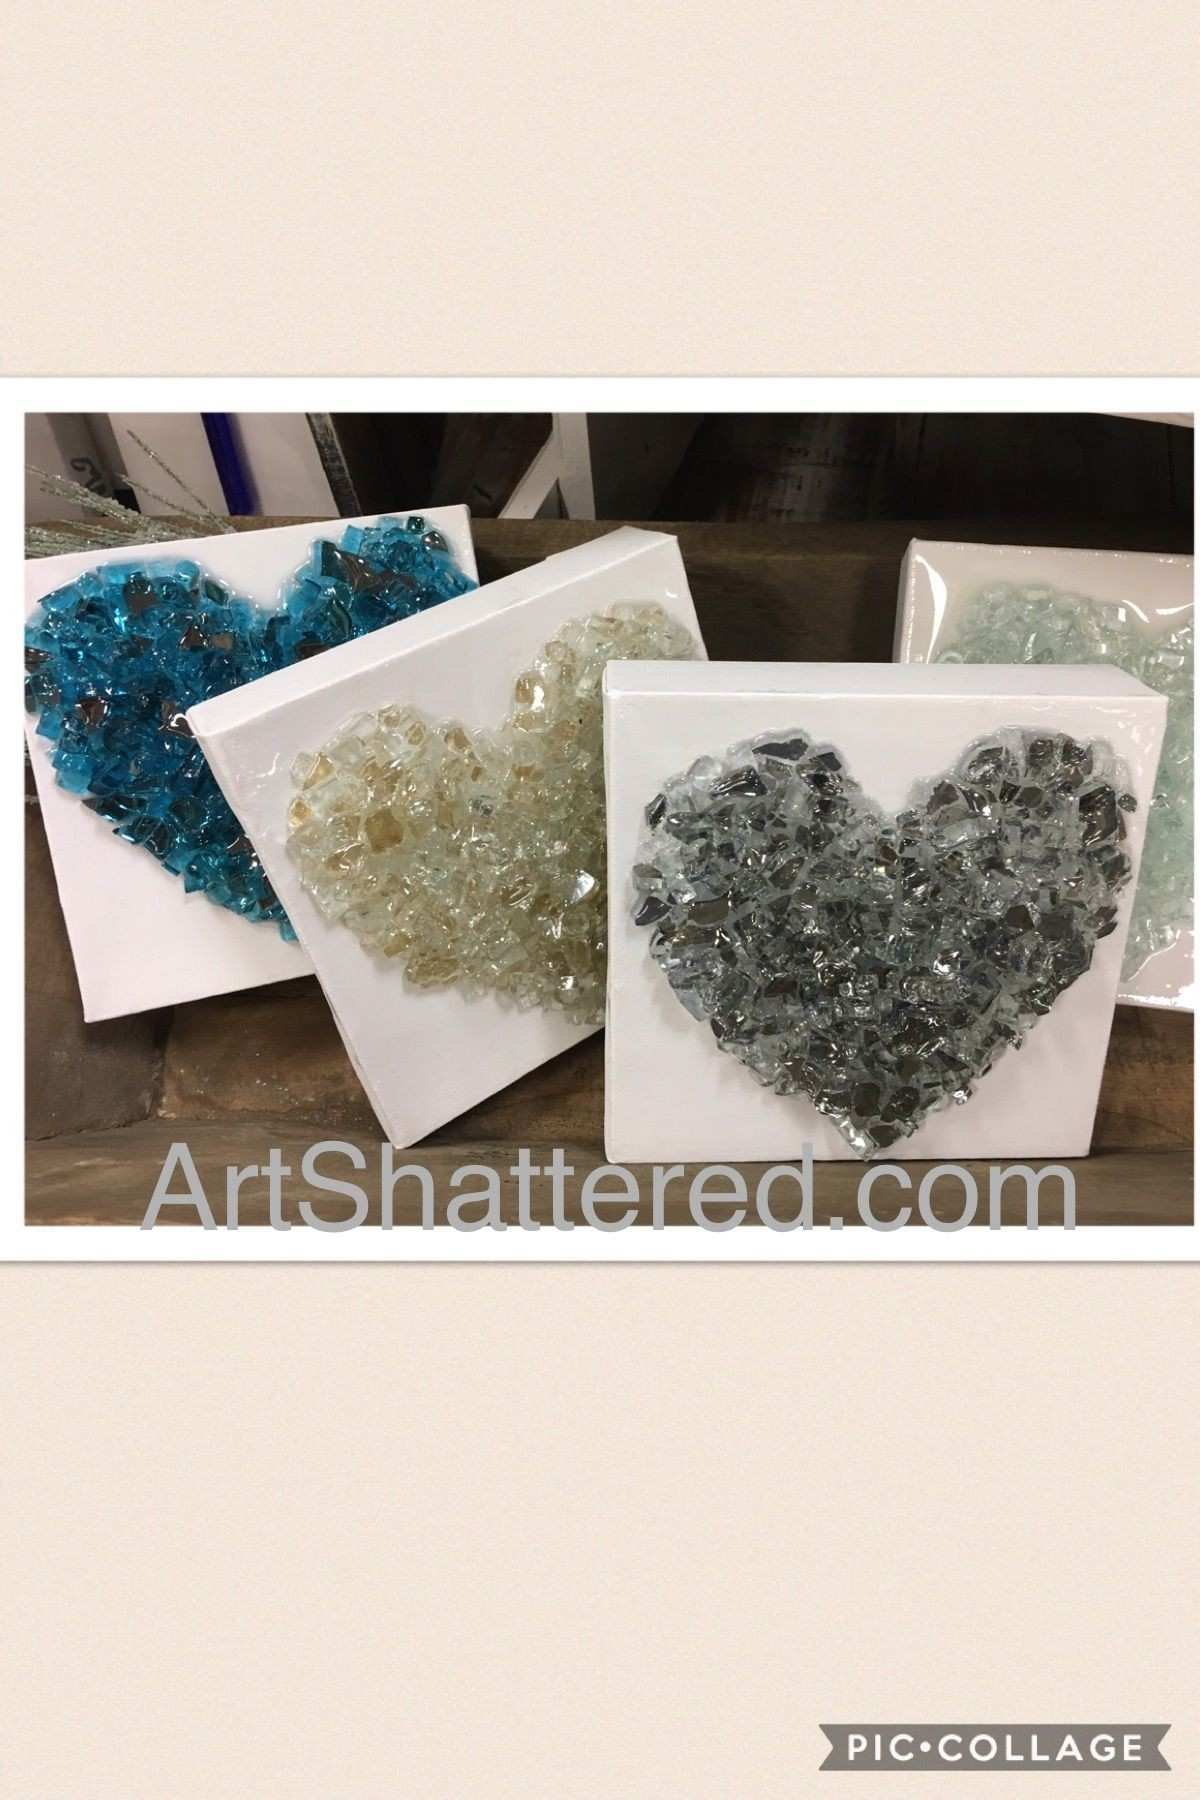 Adorable 3D glass hearts on canvas by artshattered